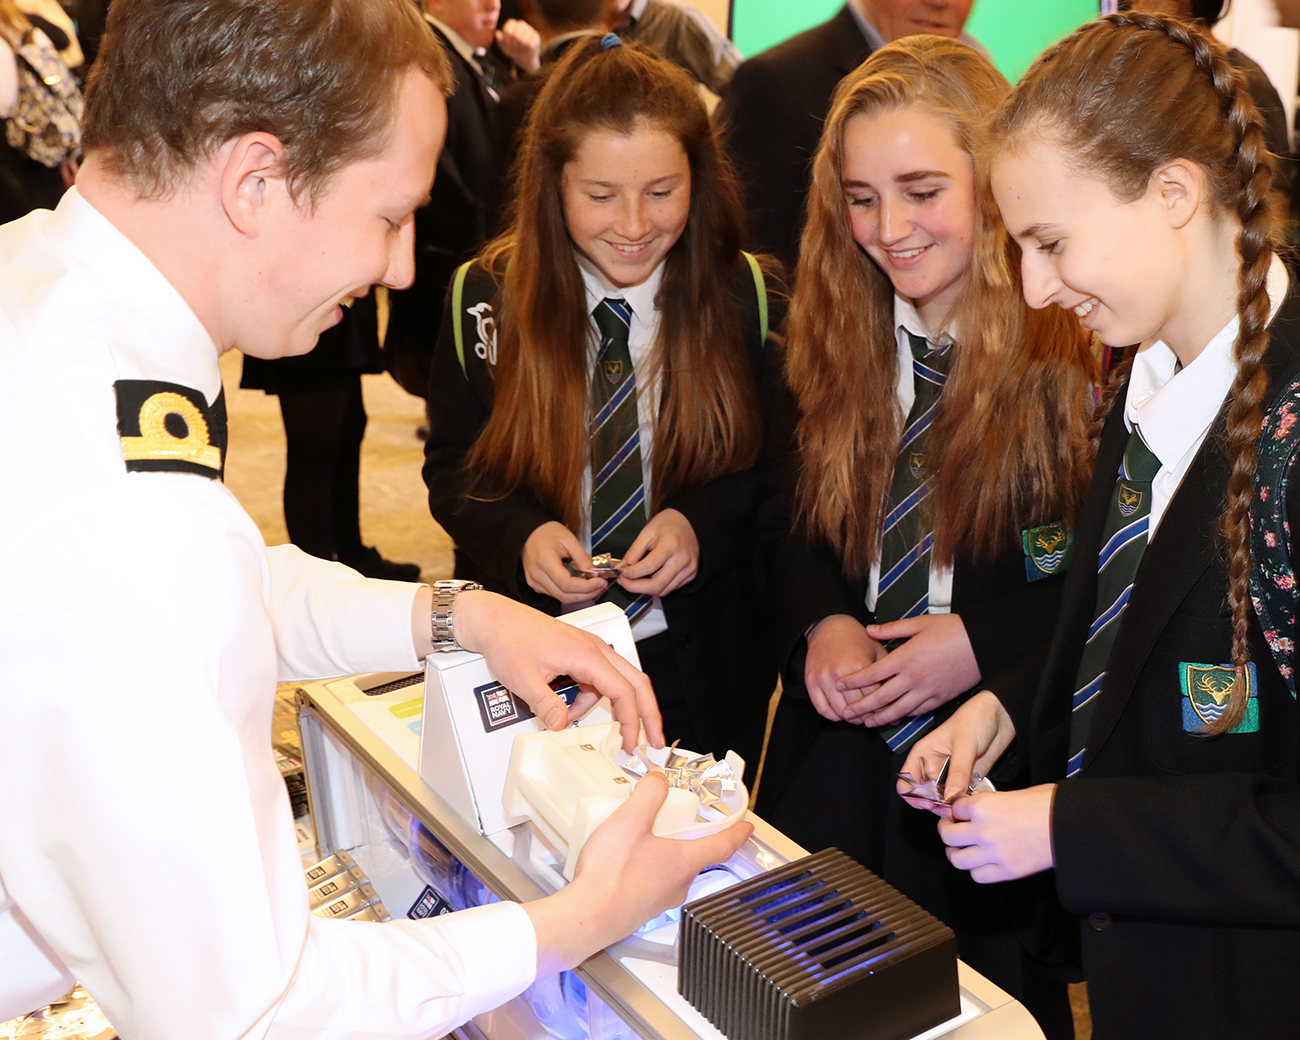 displays help promote STEM at The Big Bang Solent